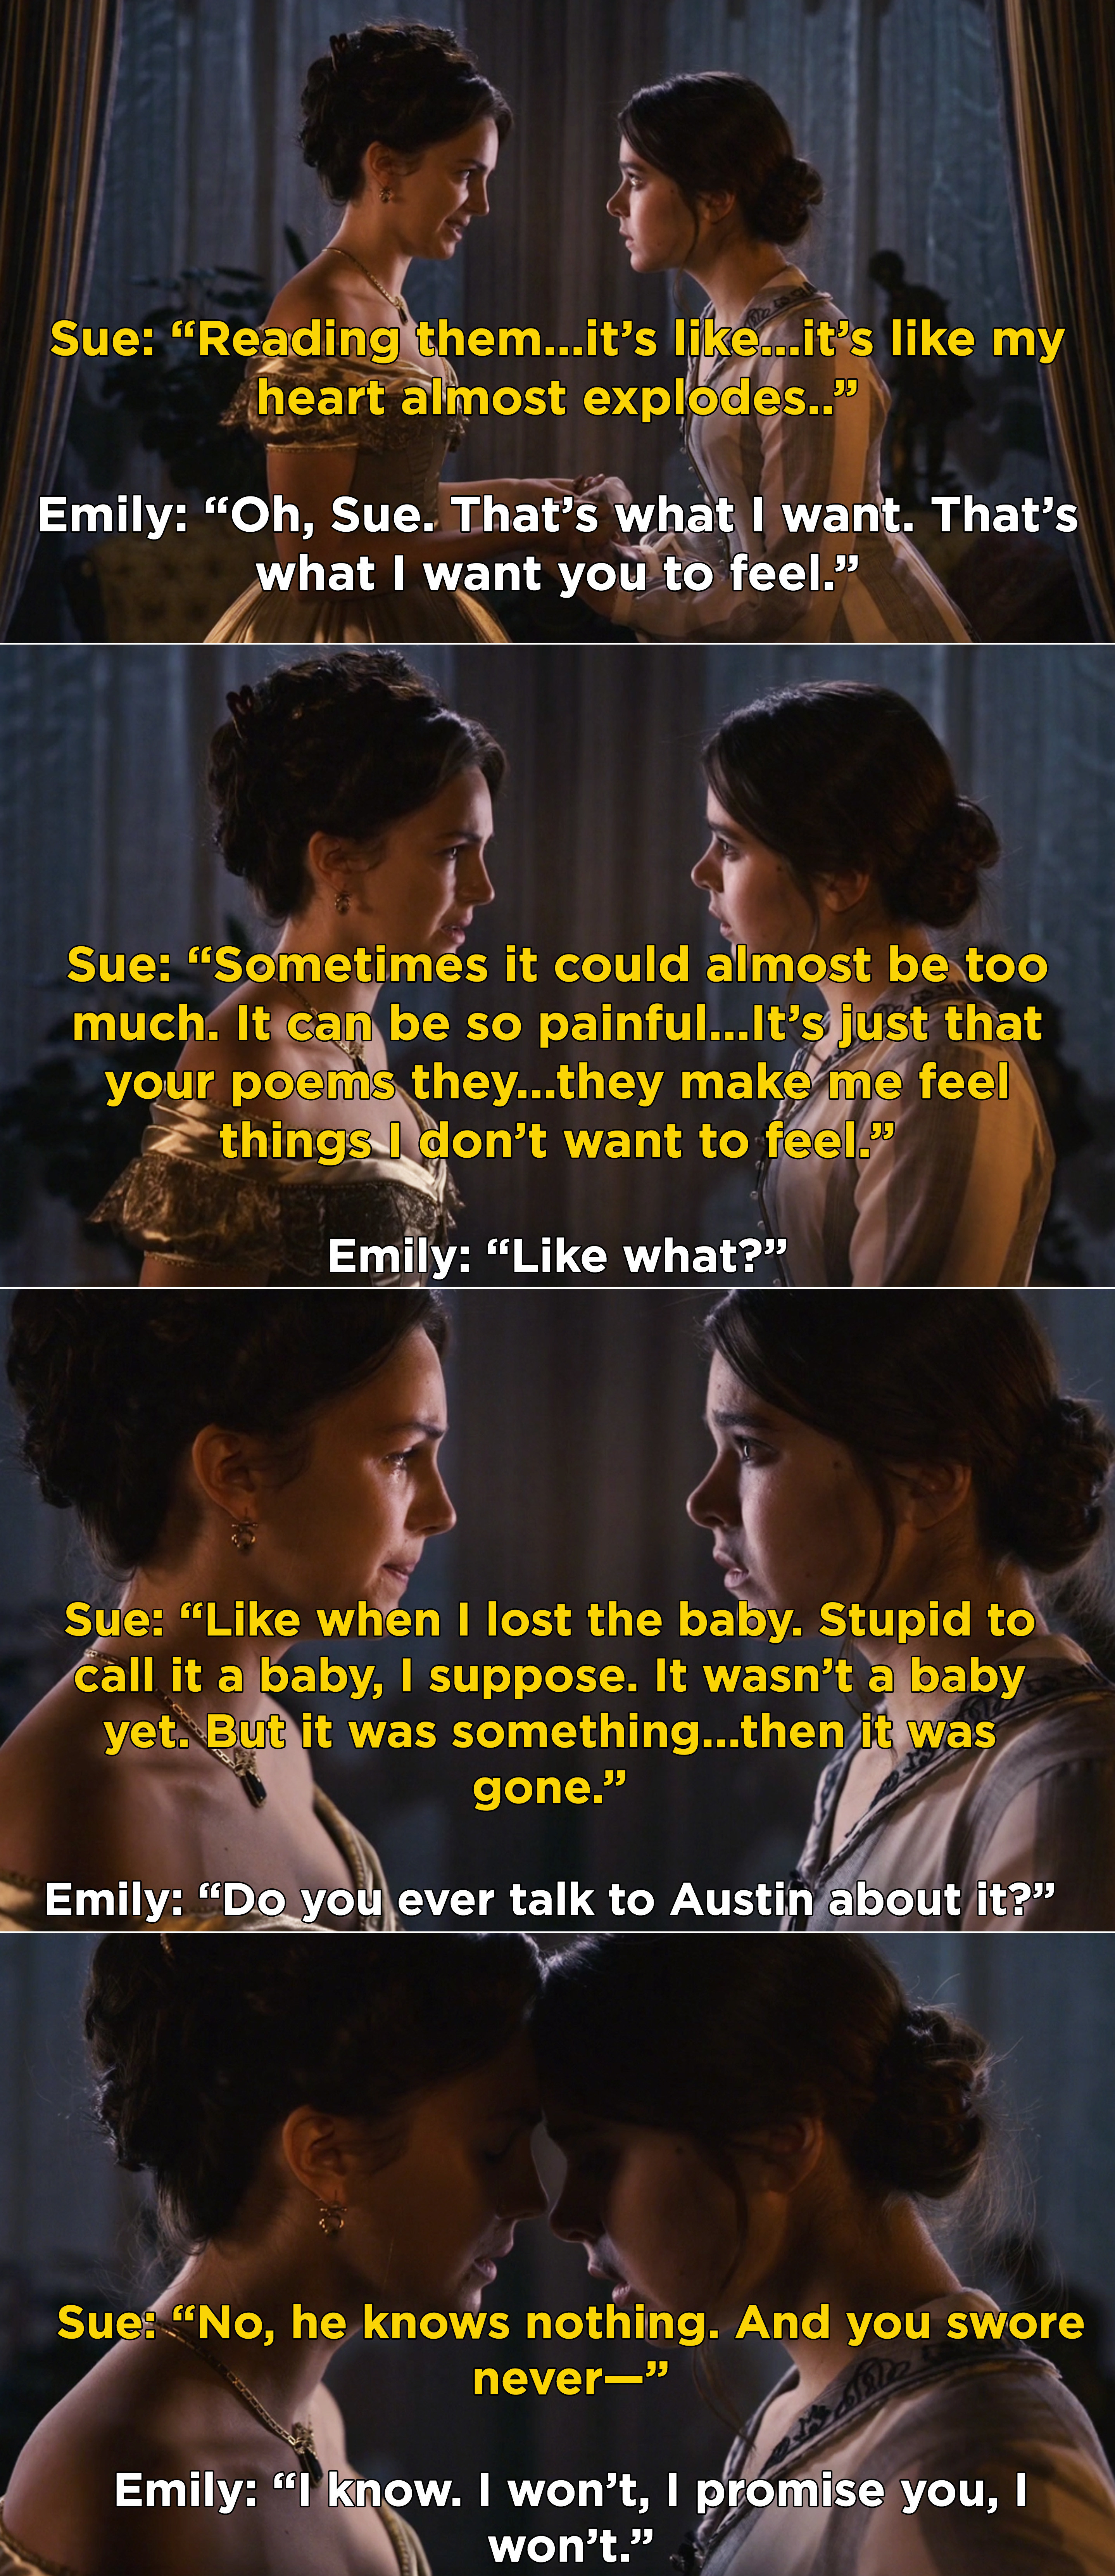 Sue telling Emily that her poems make her feel things and remember when she lost her baby